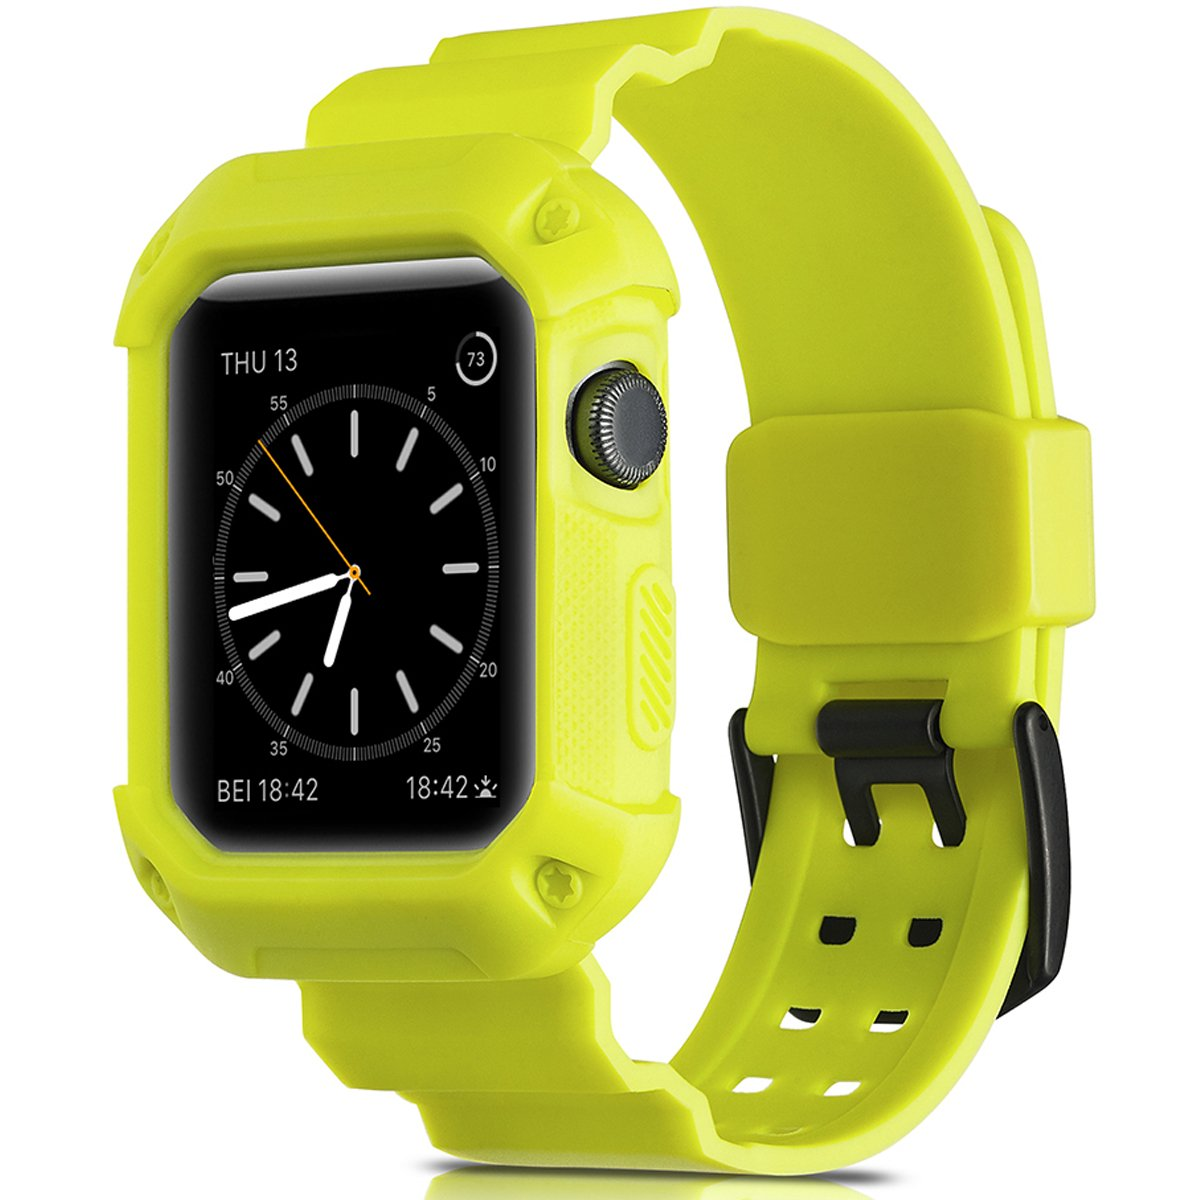 Camyse Compatible Apple Watch Band 38mm Case, Shockproof Rugged Protective Cover with Bands Stainless Steel Clasp for iWatch Apple Watch Series 3, 2, 1 Sport Edition for Men Women Grils Boys - Yellow by Camyse